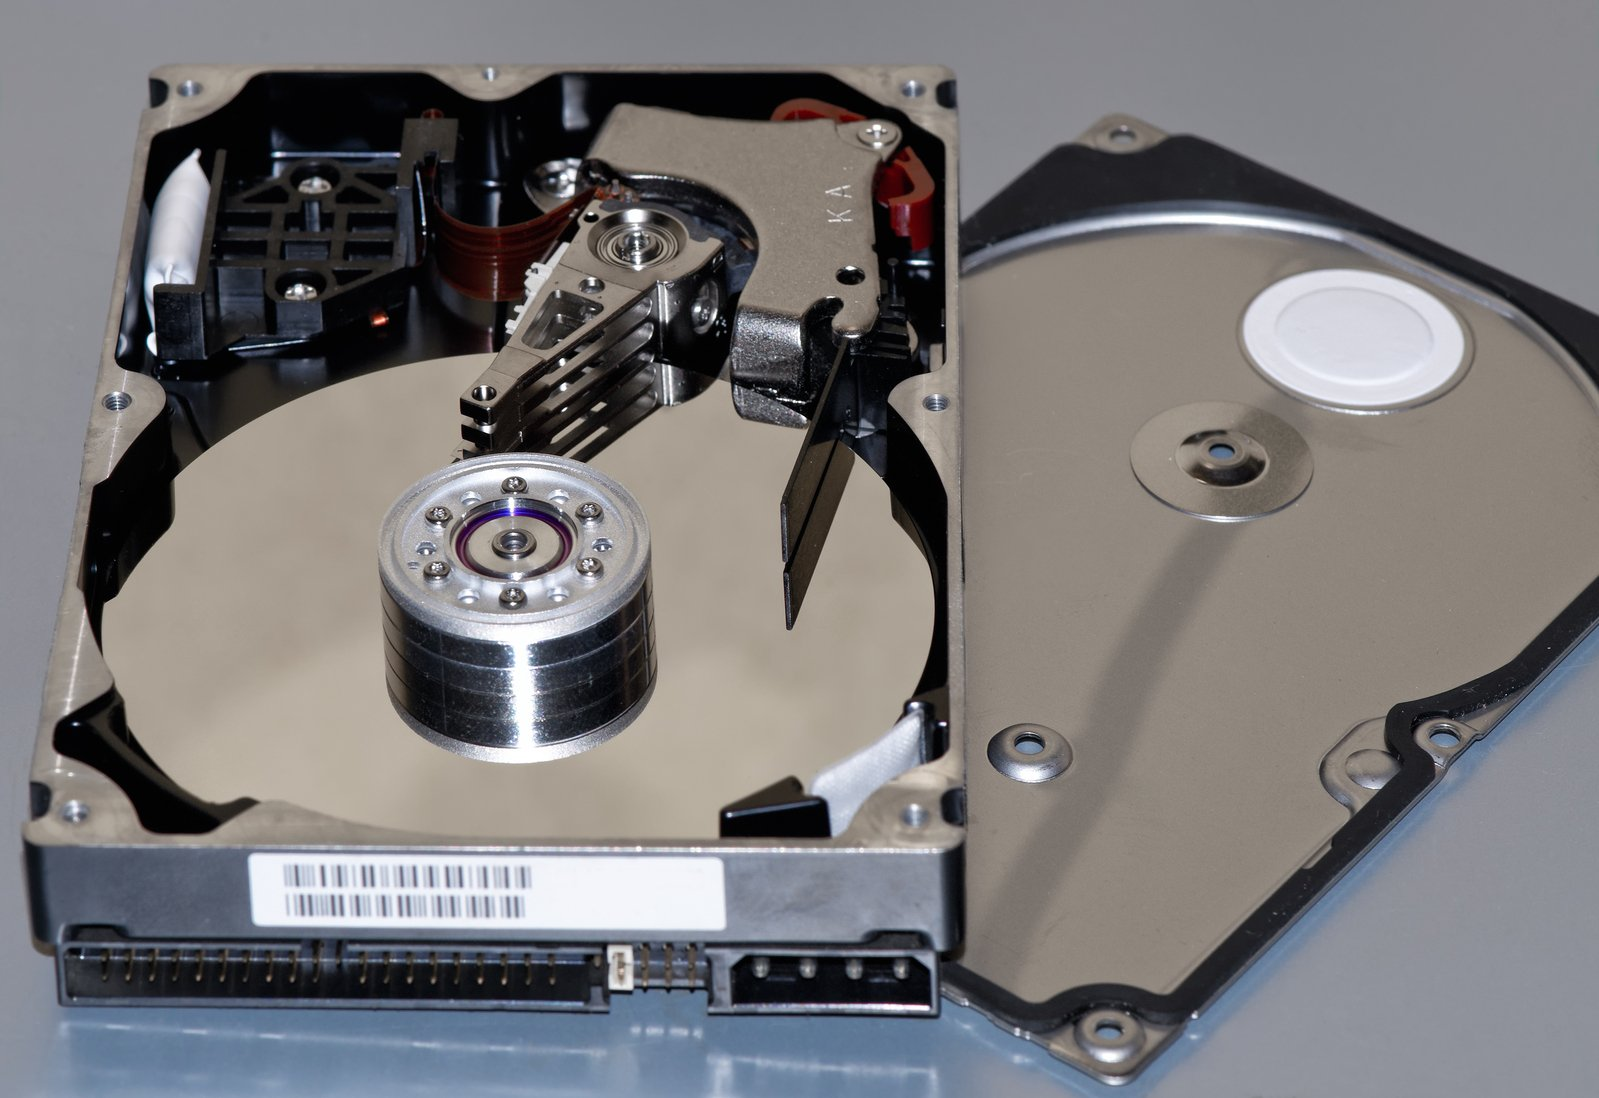 How to recover files on a hard drive that crashed